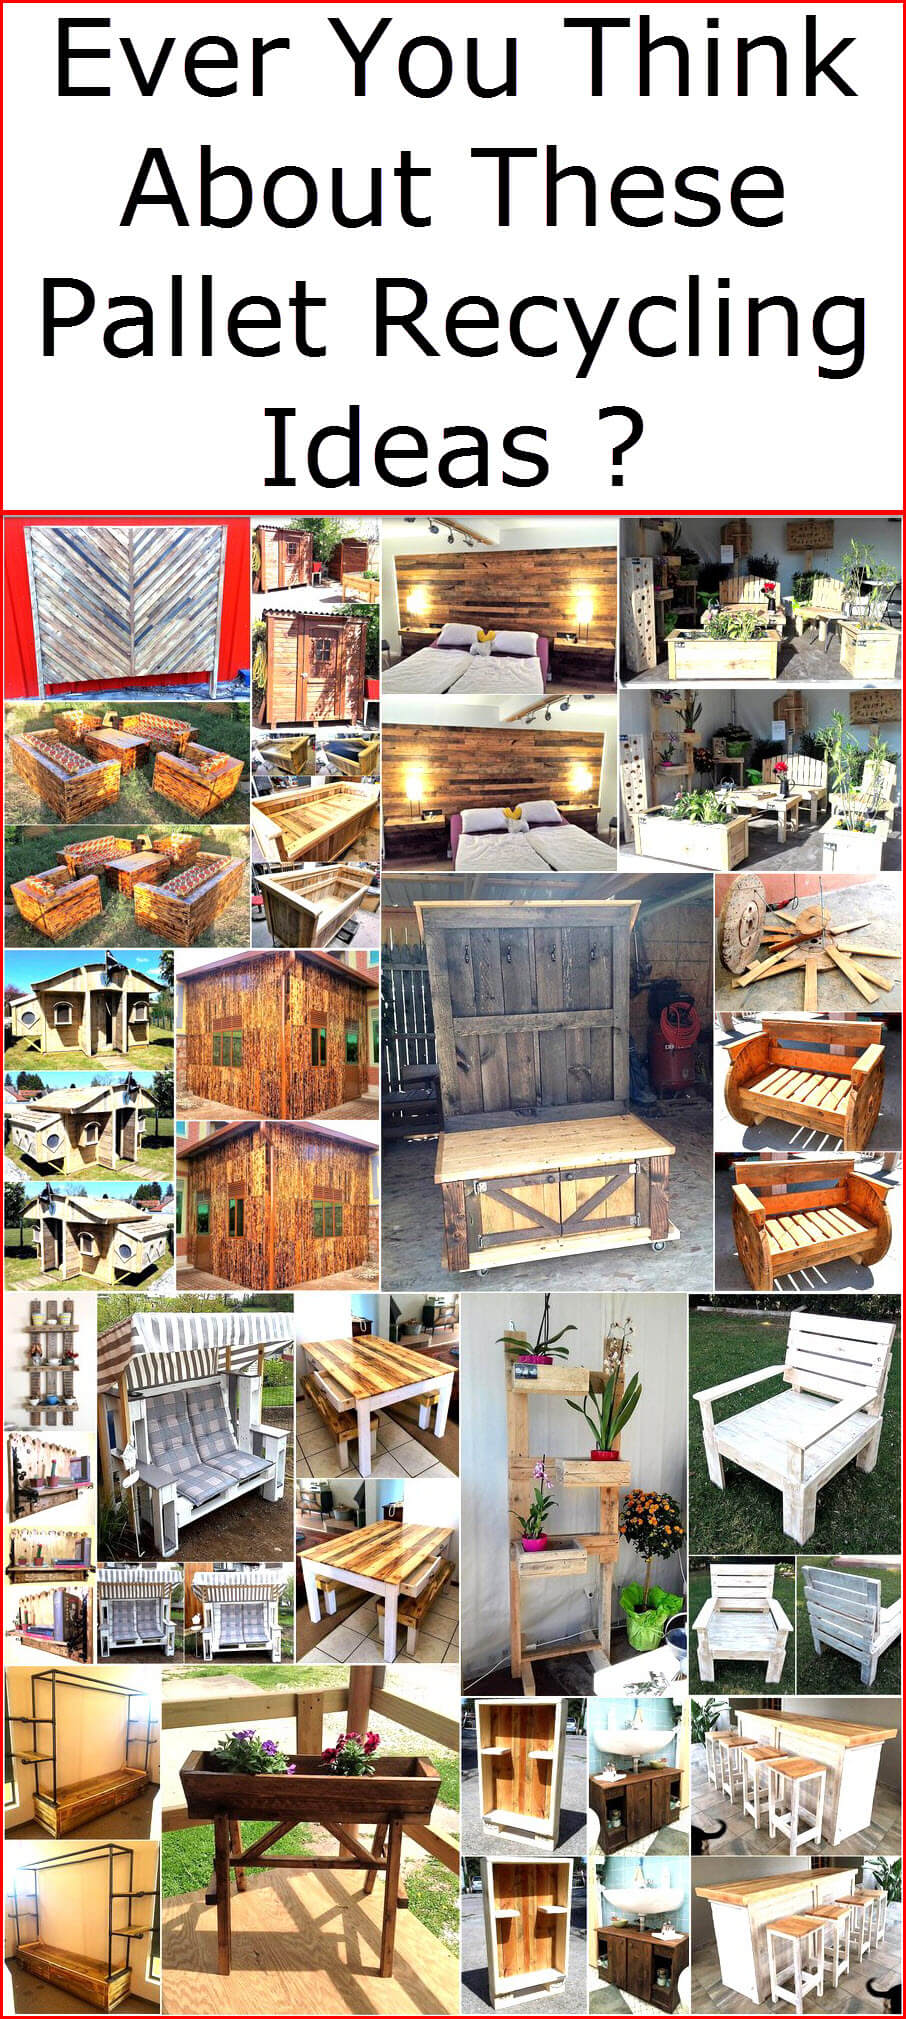 Ever You Think About These Pallet Recycling Ideas